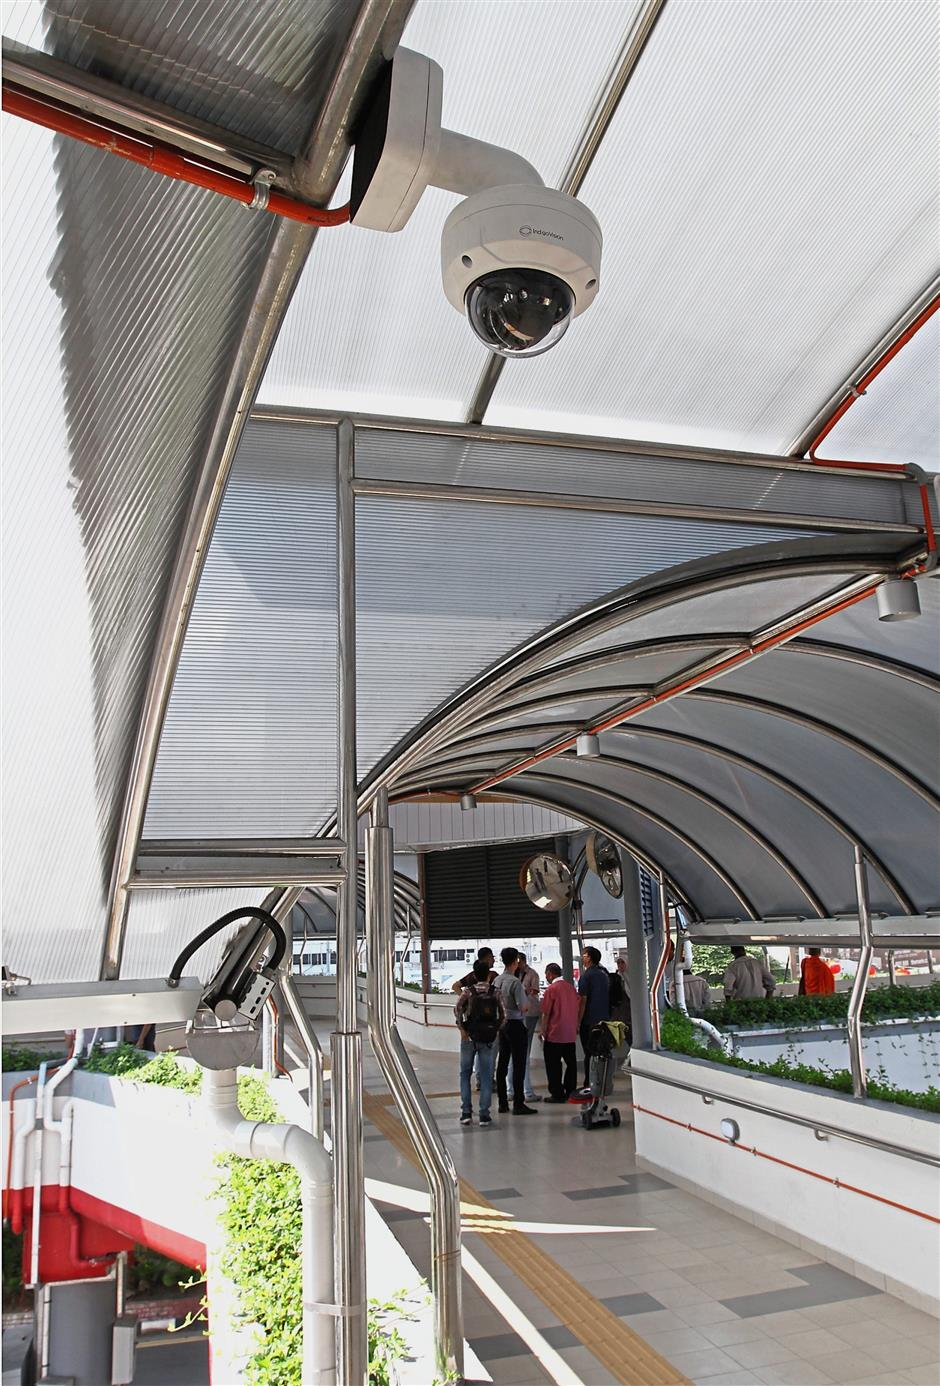 Eleven CCTVs have been installed on the Octopus Bridge to ensure the safety of the pedestrians.